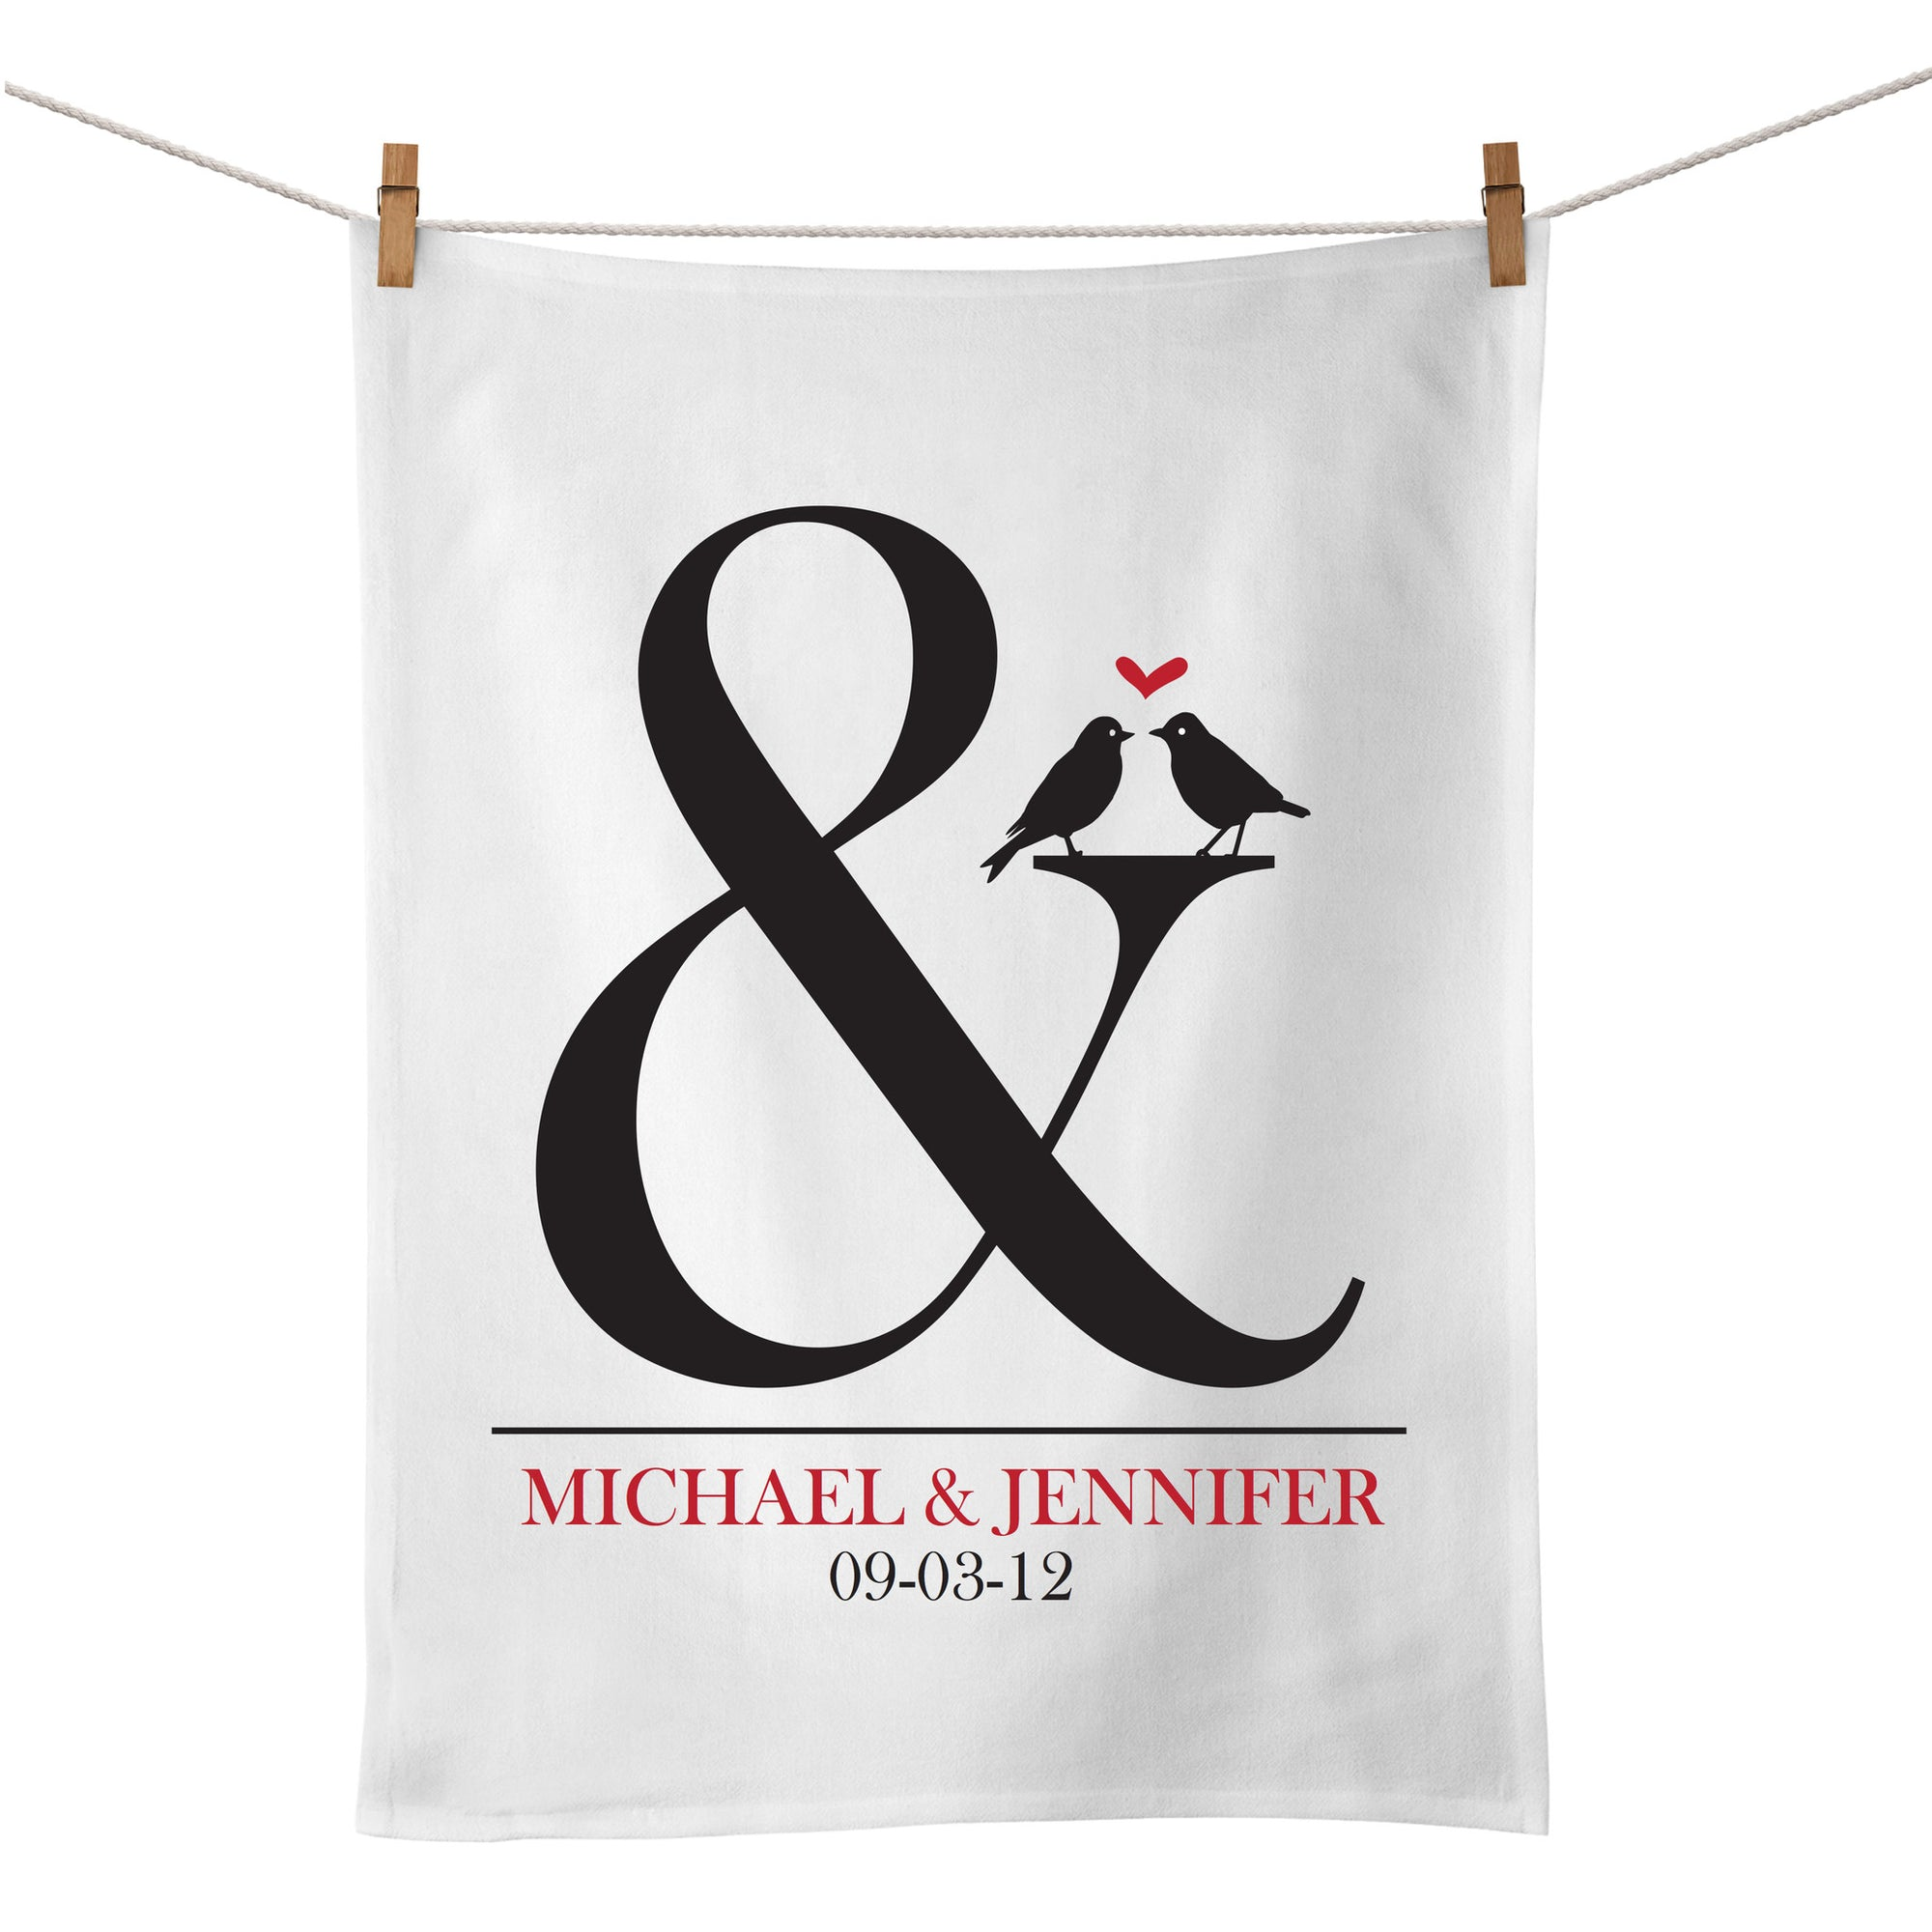 Ampersand Tea Towel